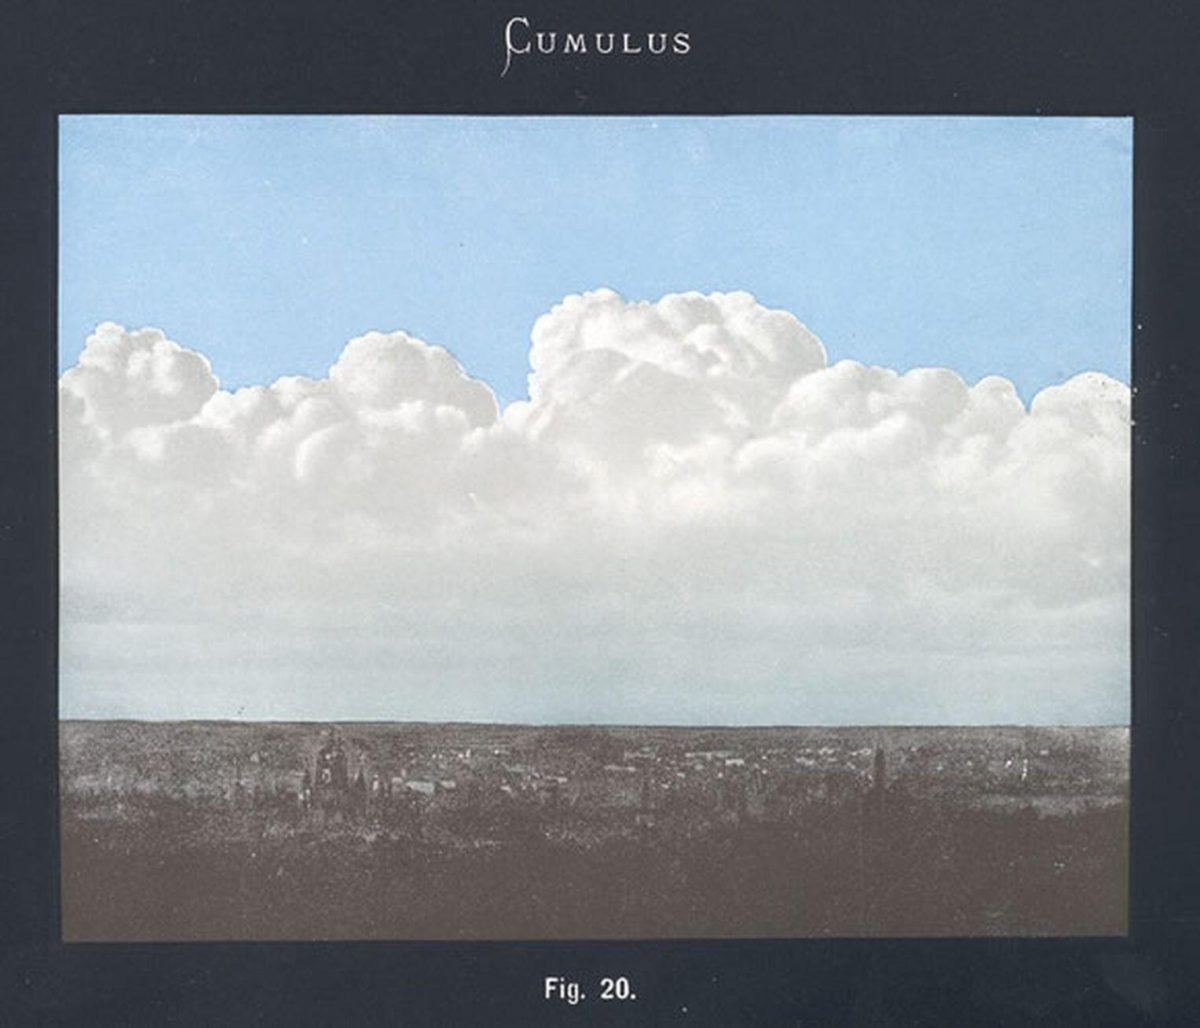 International Cloud Atlas 1896-24-Cumulo-nimbus (Cu).